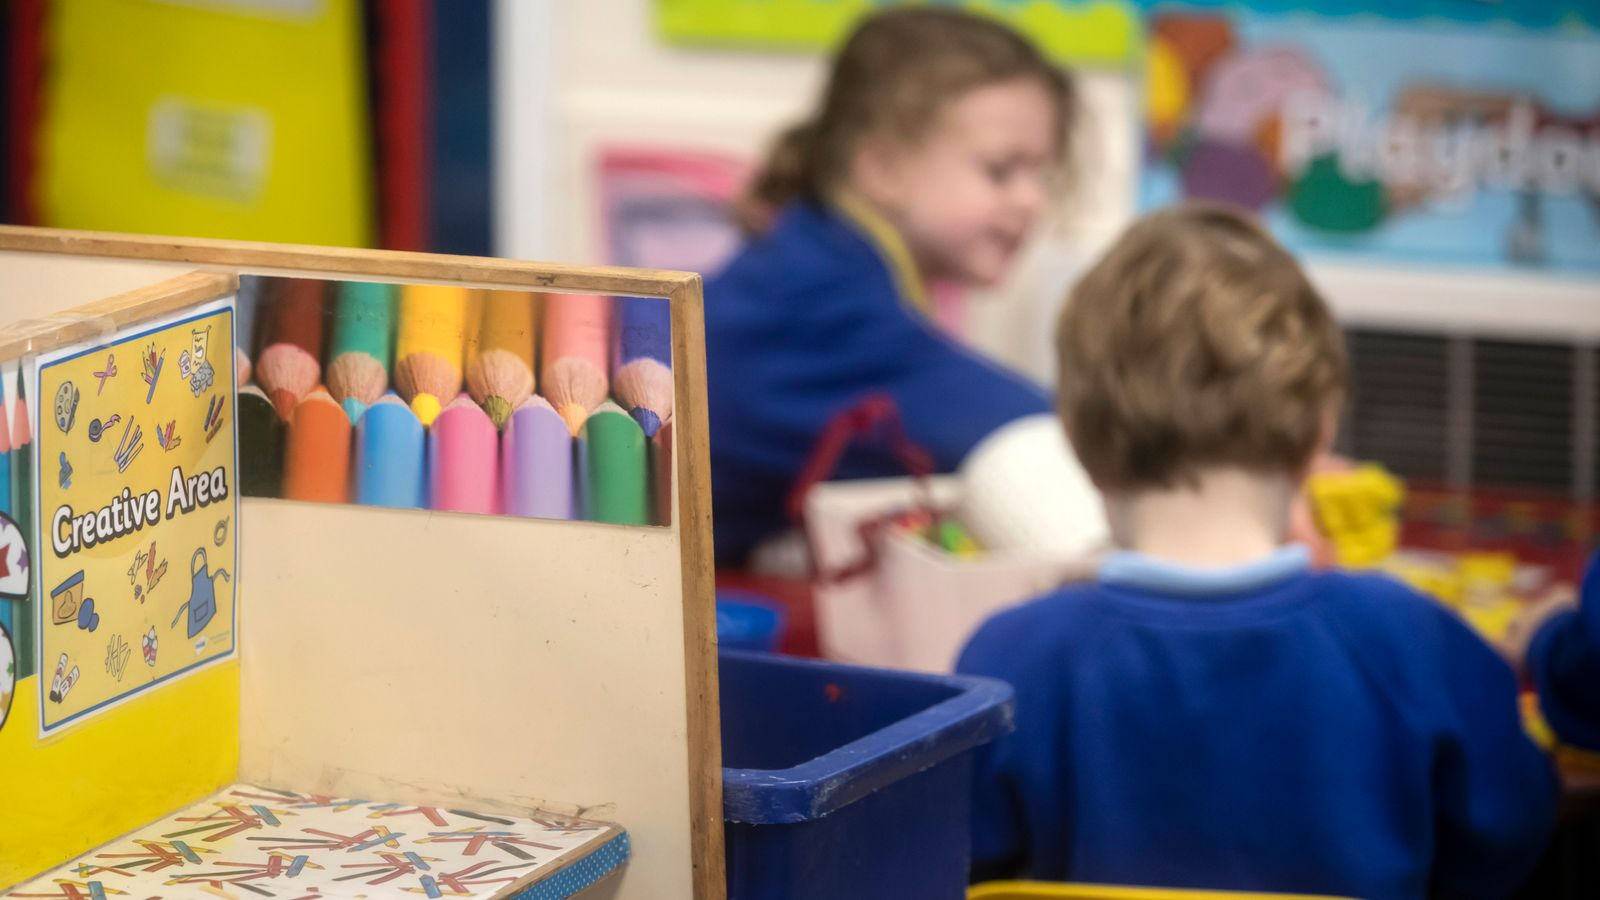 COVID-19: Government sticking to plan for schools to return from next week, Michael Gove tells Sky News